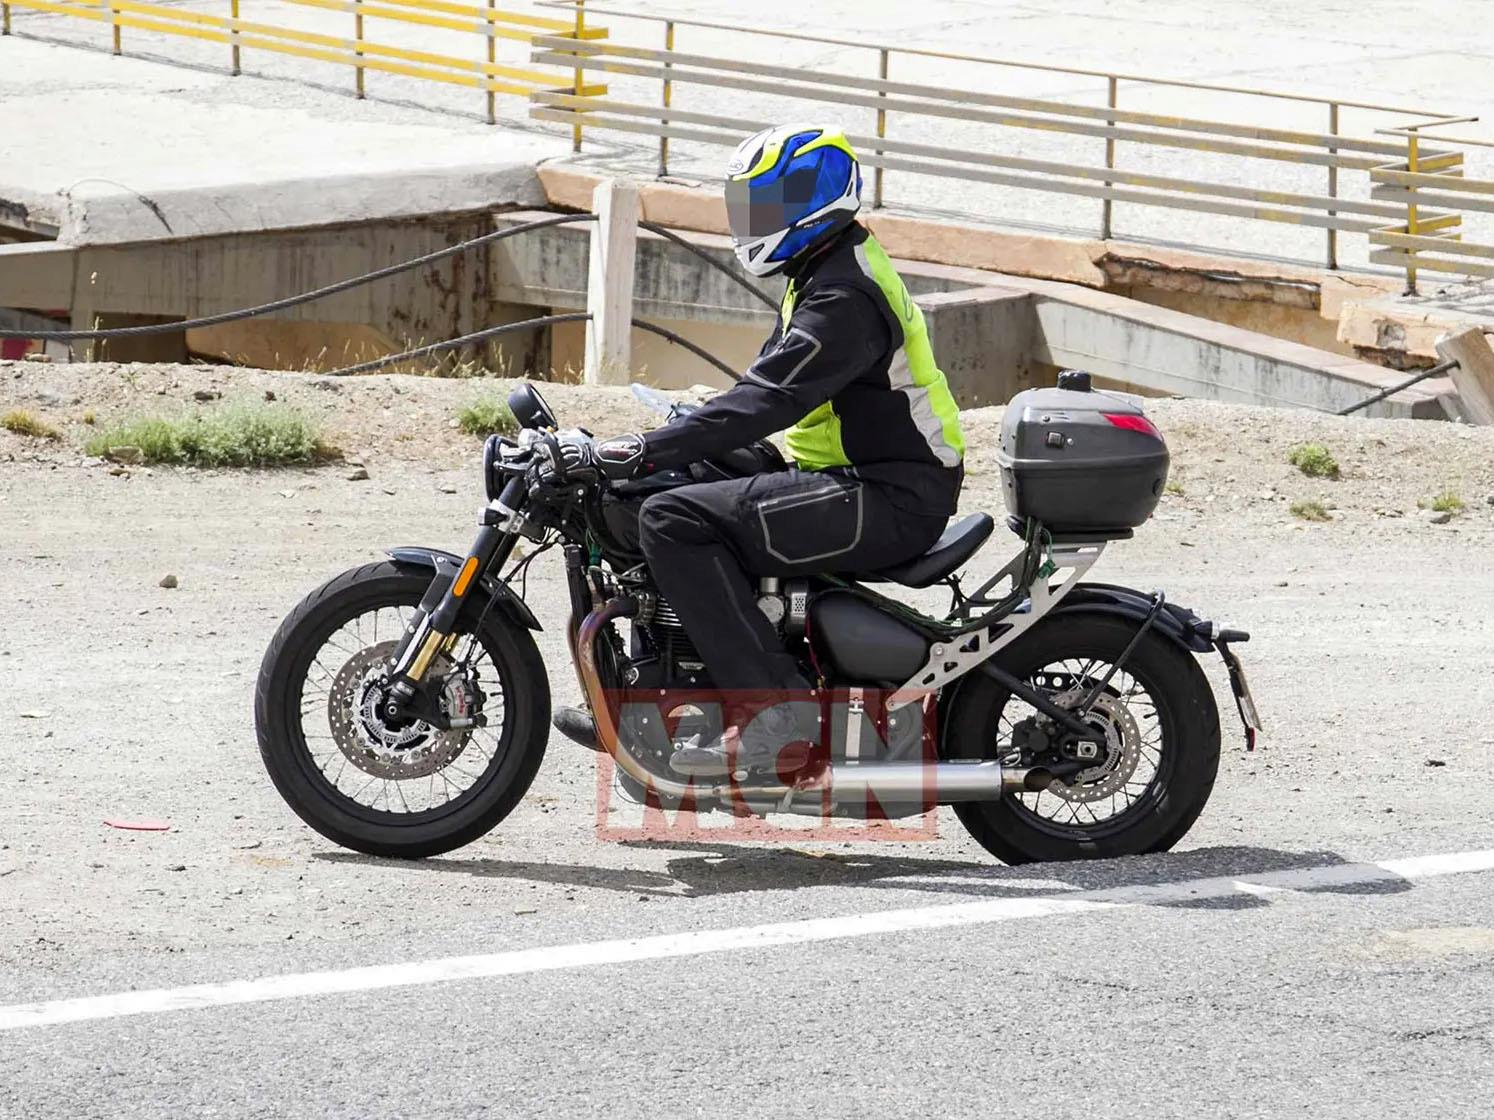 Triumph Bobber TFC spotted in testing